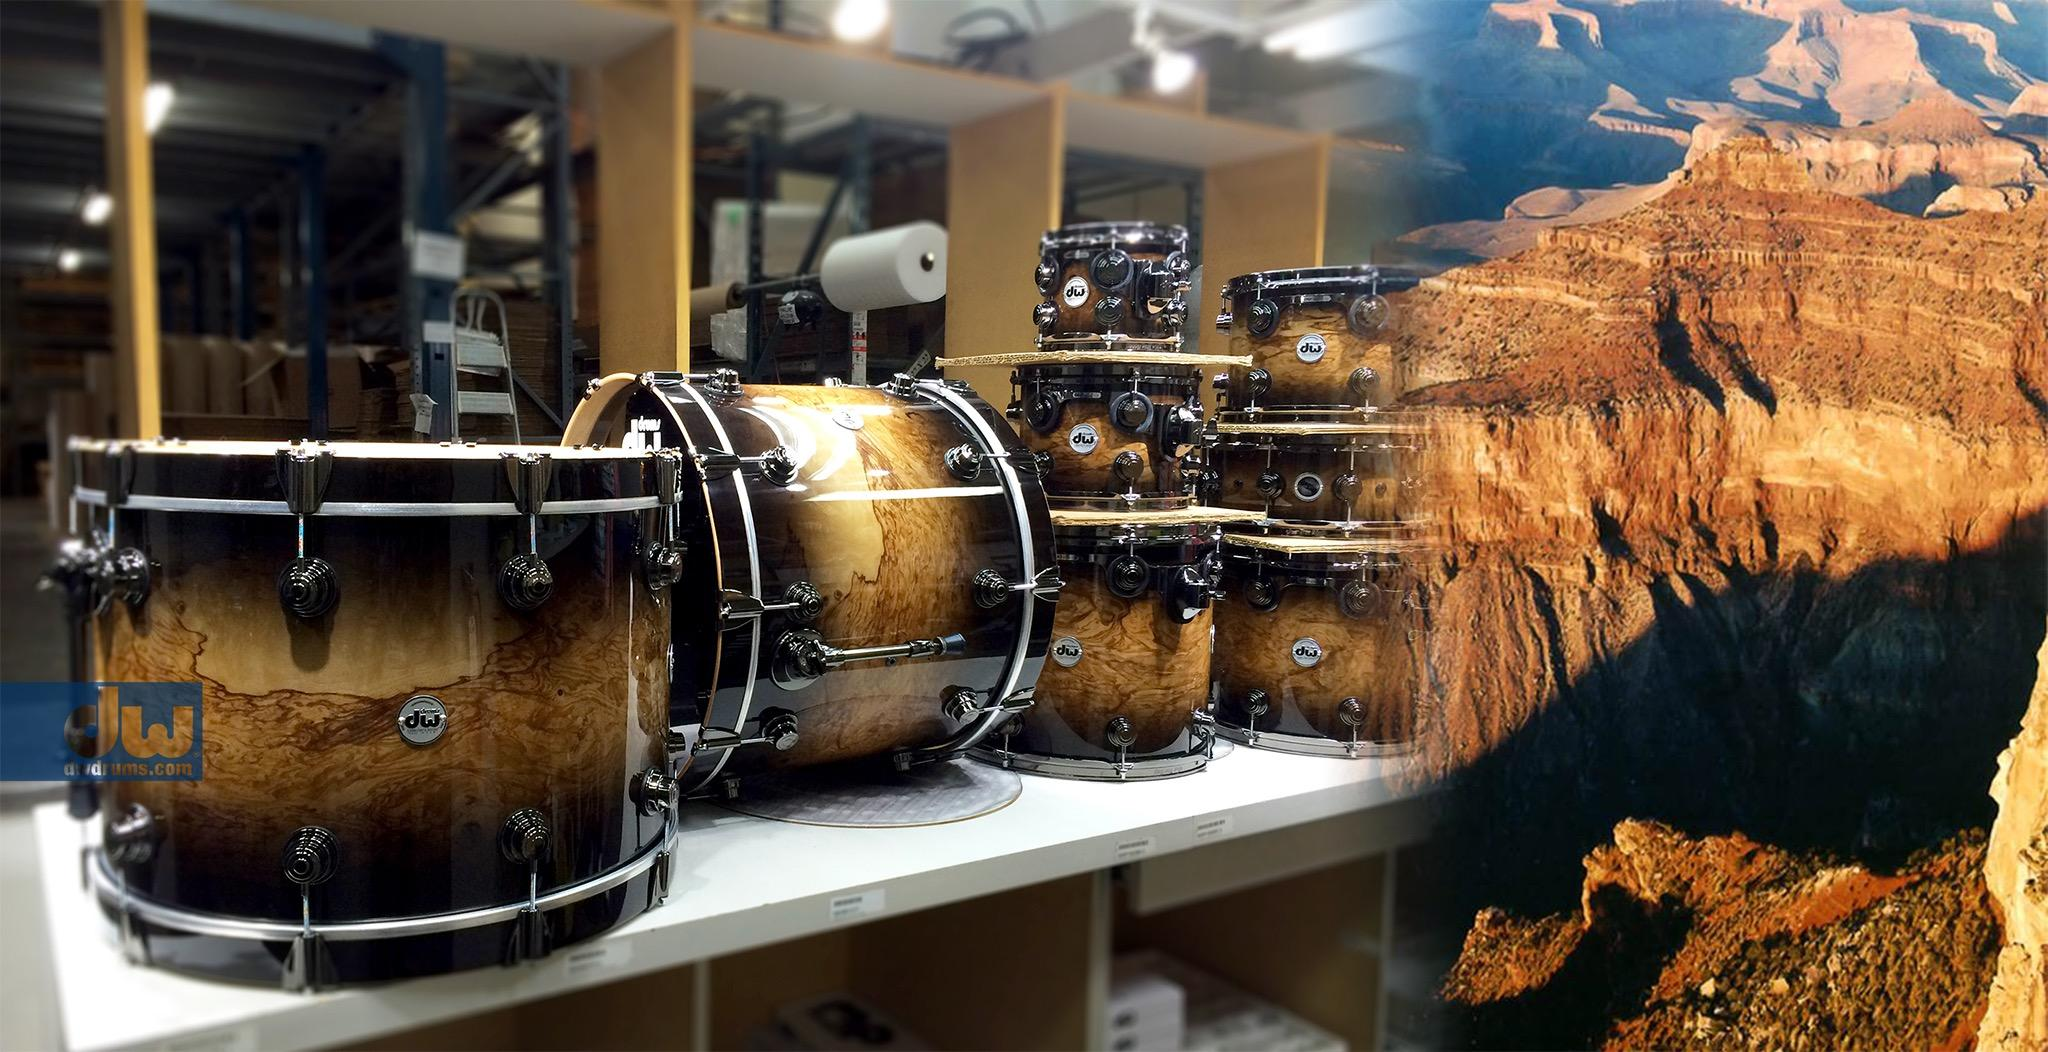 Mountains of drums! #dwdrums #thedrummerschoice http://t.co/MwhlNo54M4